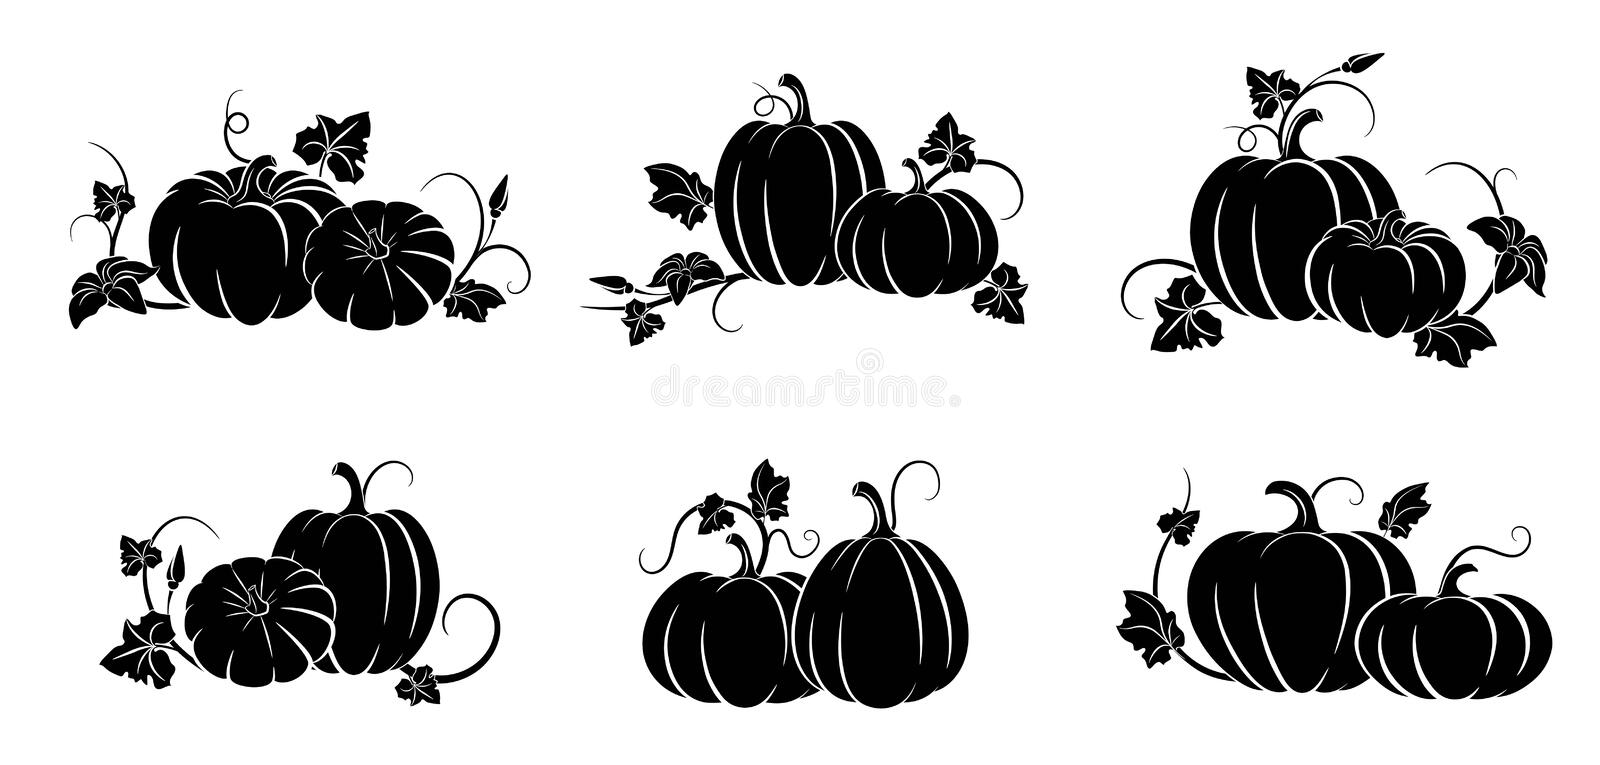 Pumpkin. Set of silhouettes of different pumpkins. Vector illustration vector illustration